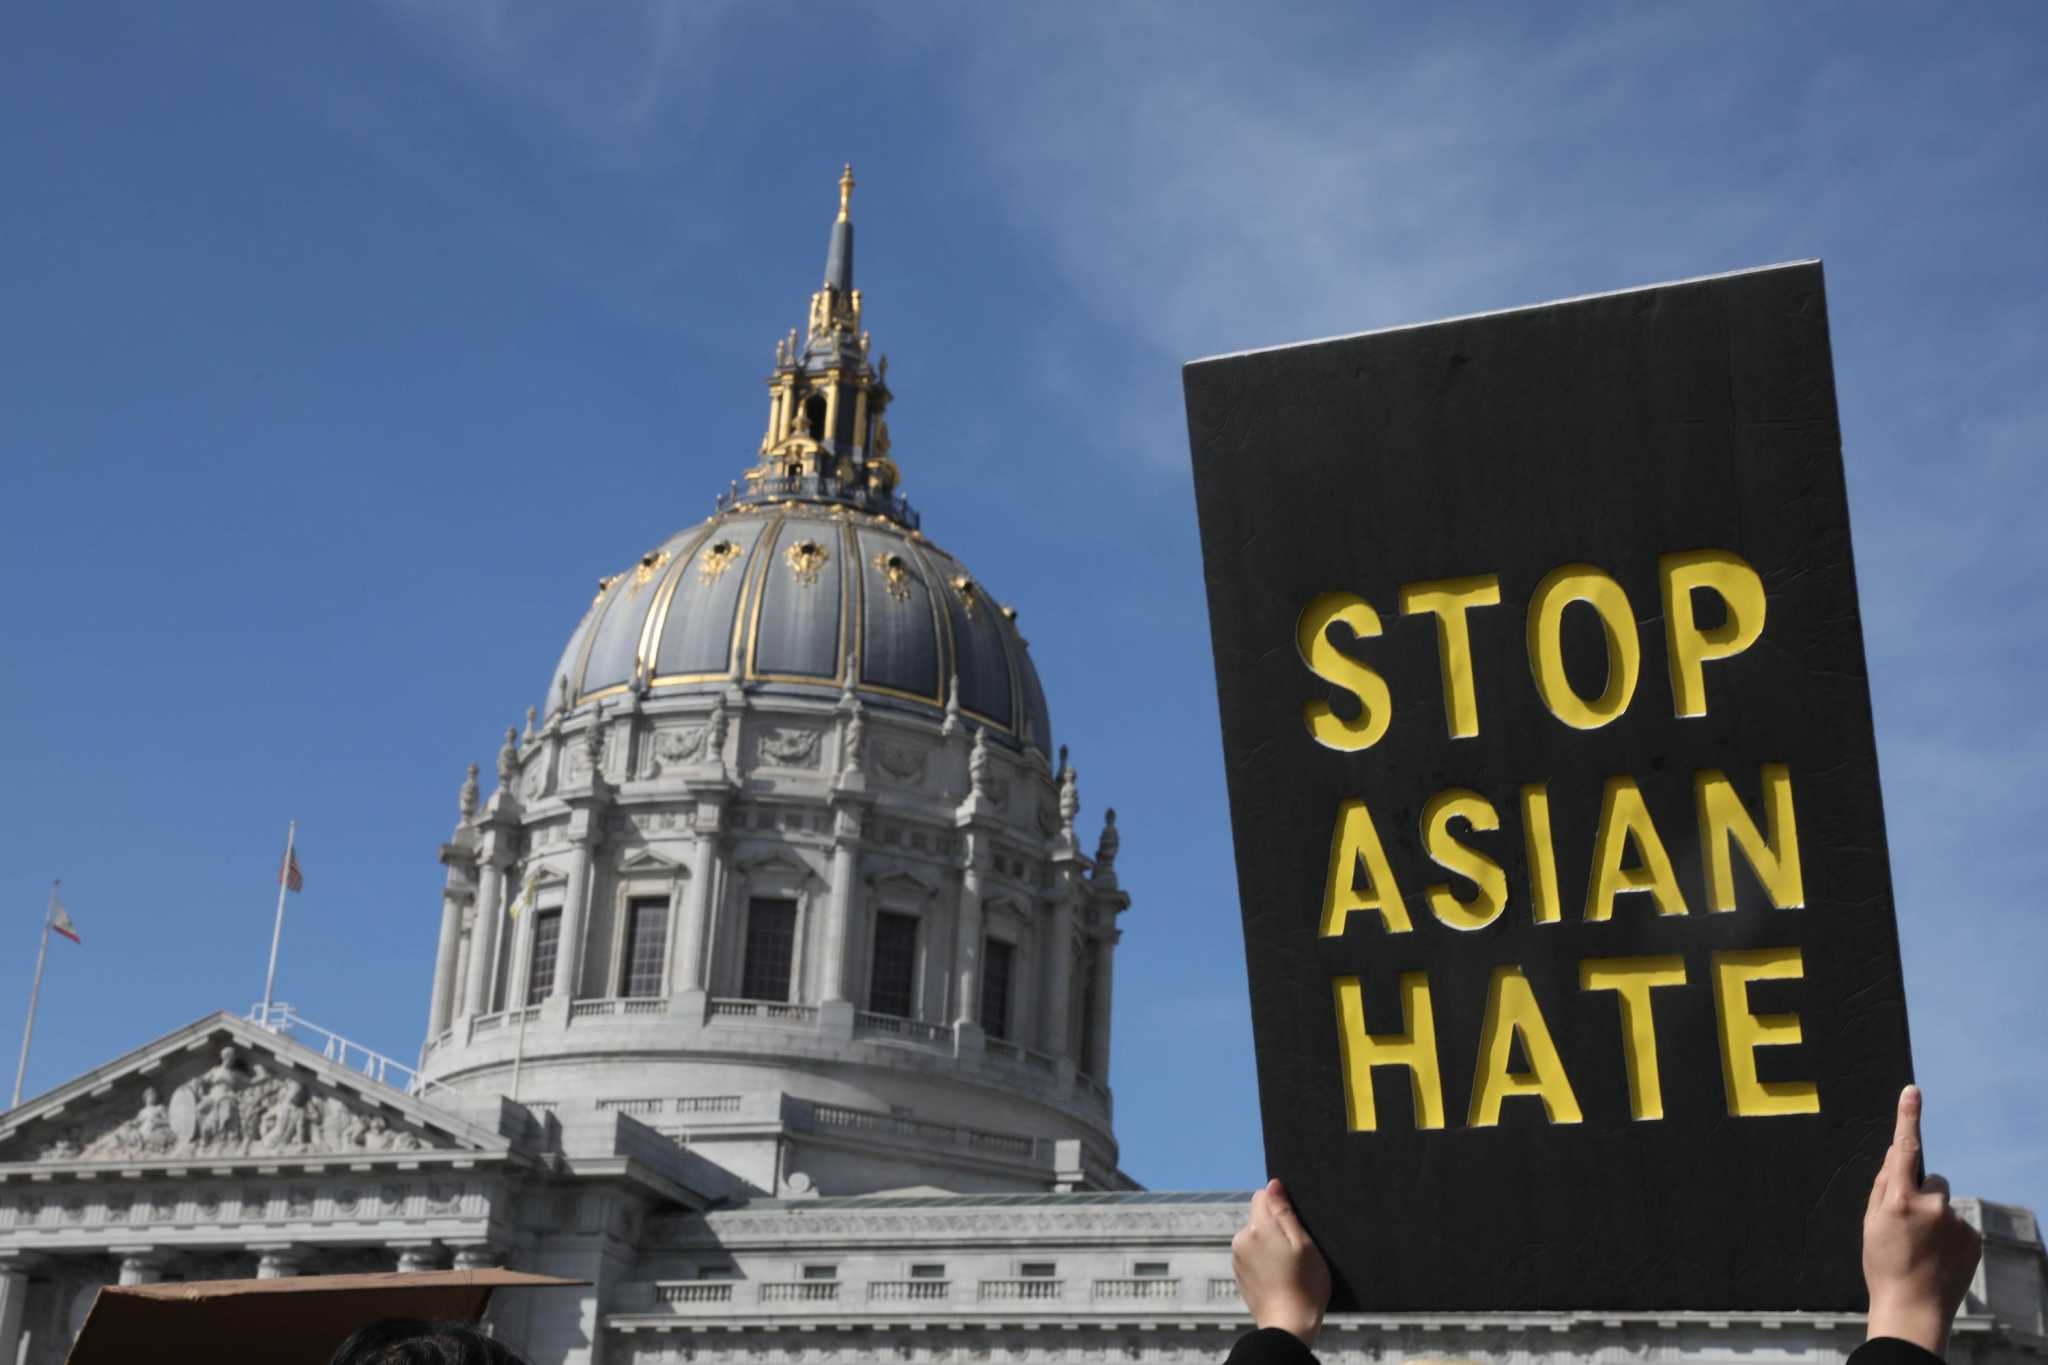 www.sfchronicle.com: Amid attacks on Asians, legal charges and public perception are out of step